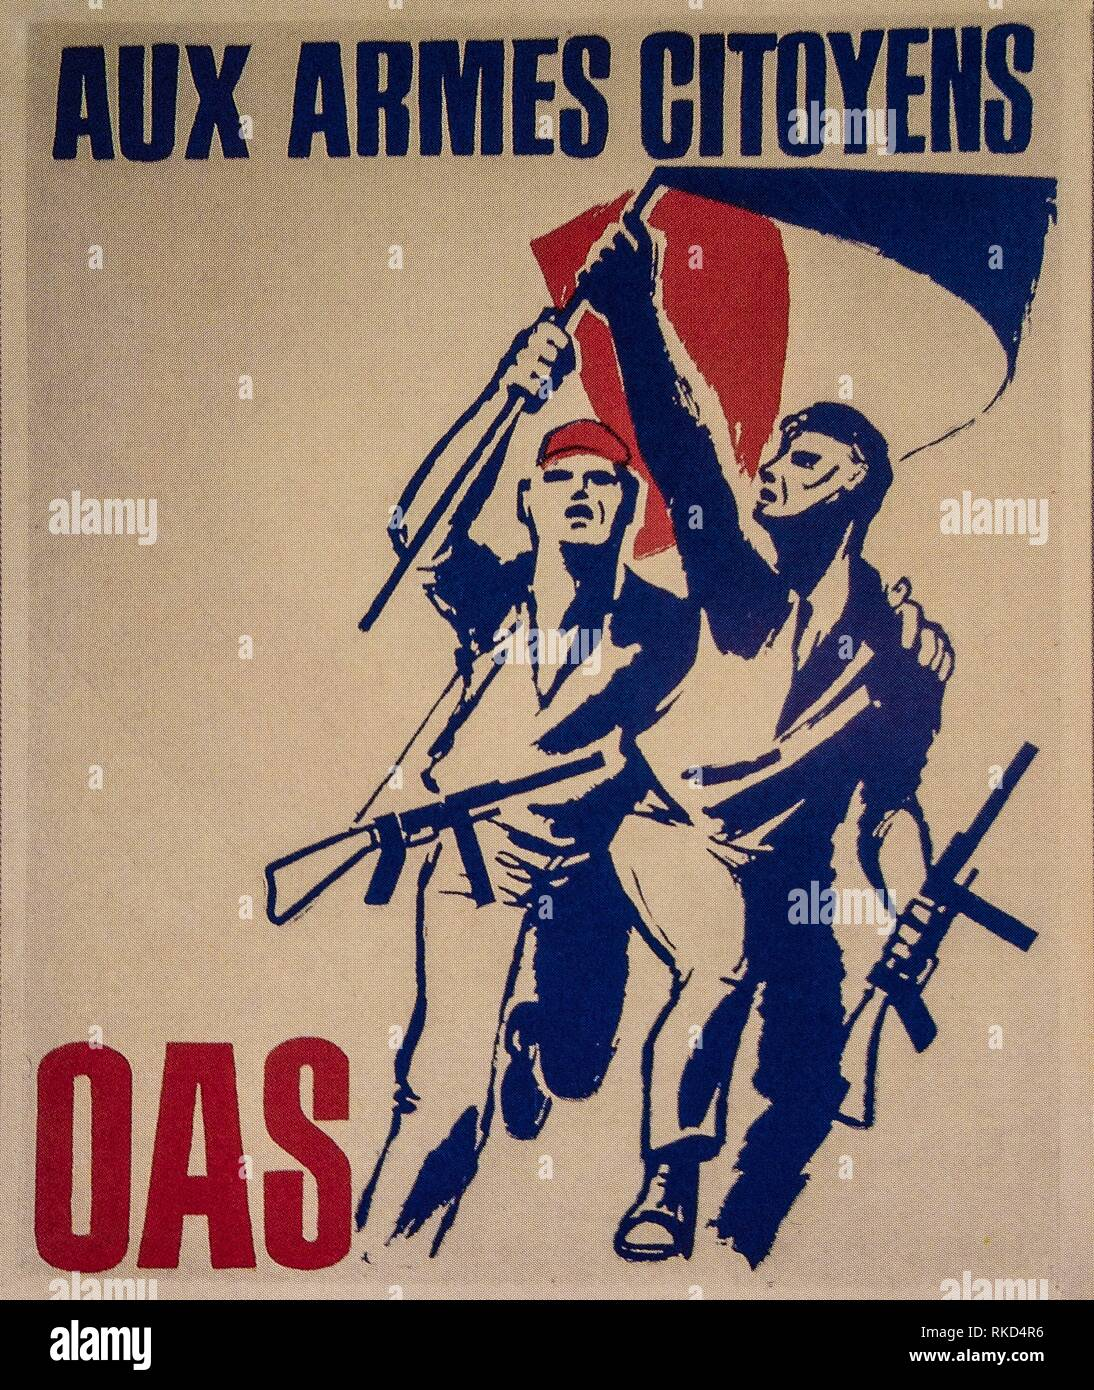 France, Algier, poster of ´´OAS´´. The Organisation armée secrète or OAS (meaning Secret Army Organisation) was a short-lived right-wing French - Stock Image